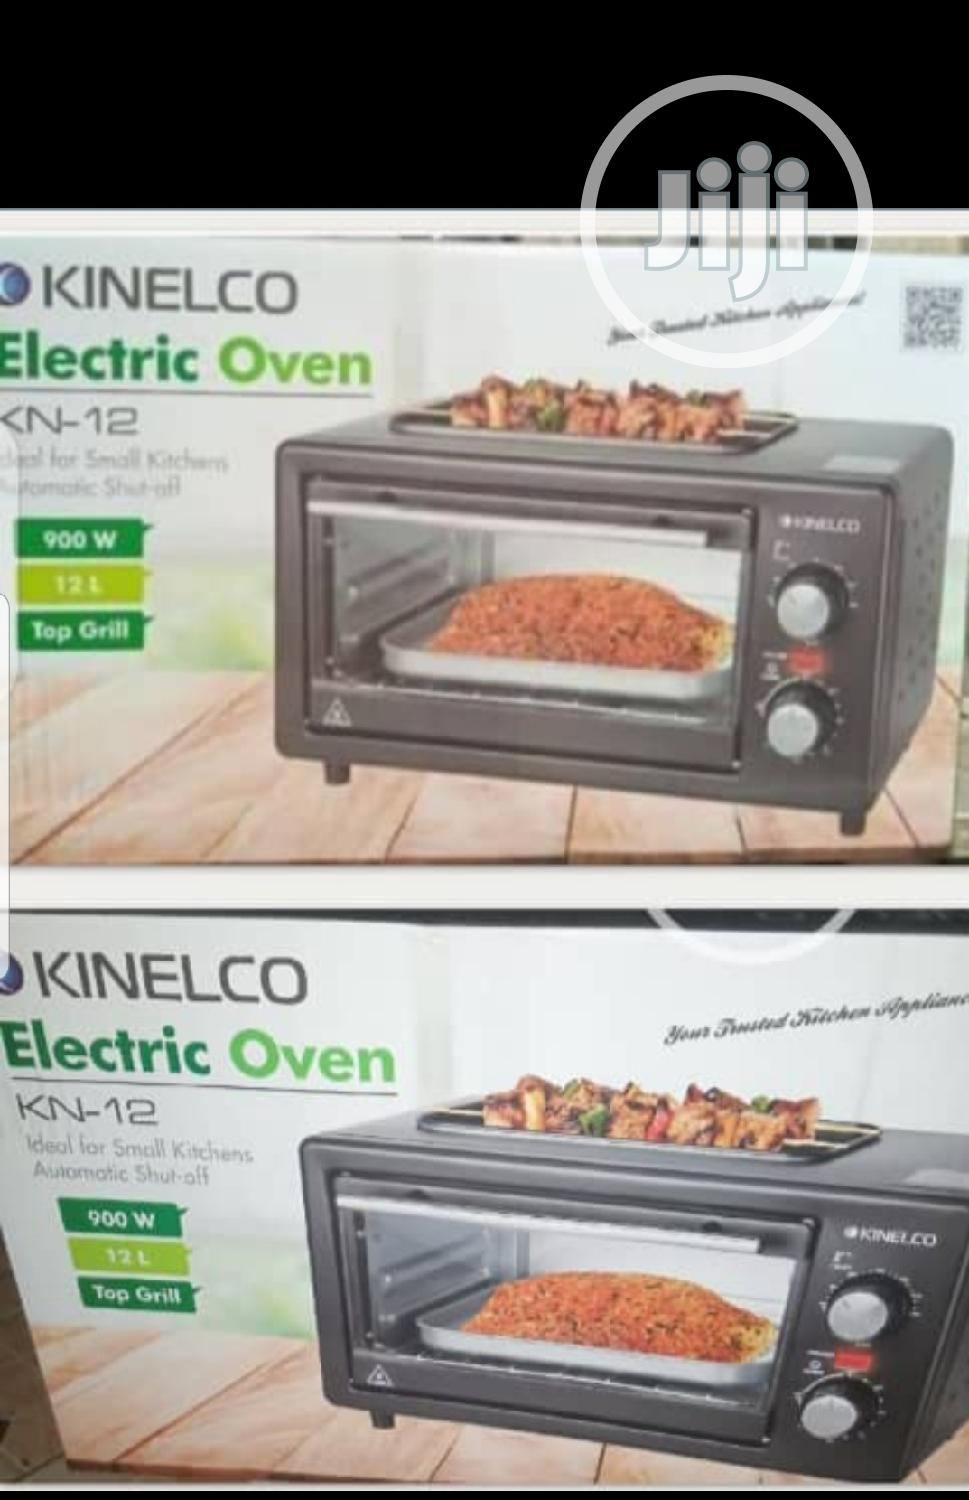 Kinelco Electric Oven